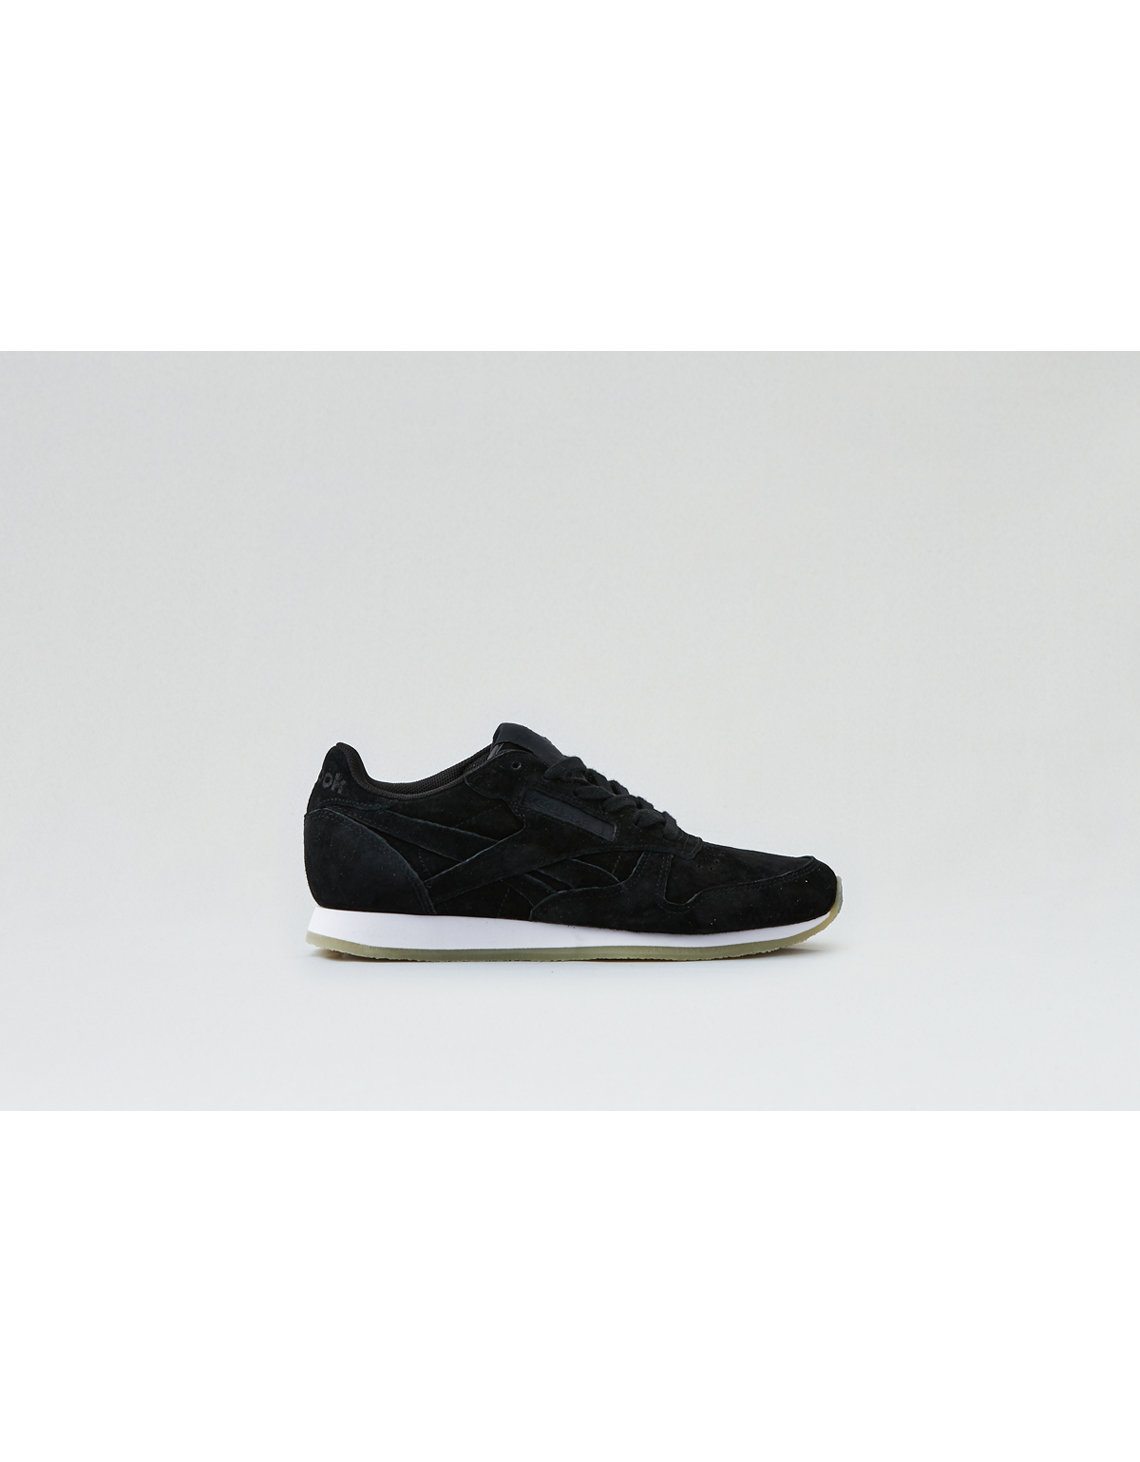 reebok classic leather cr sneaker, black